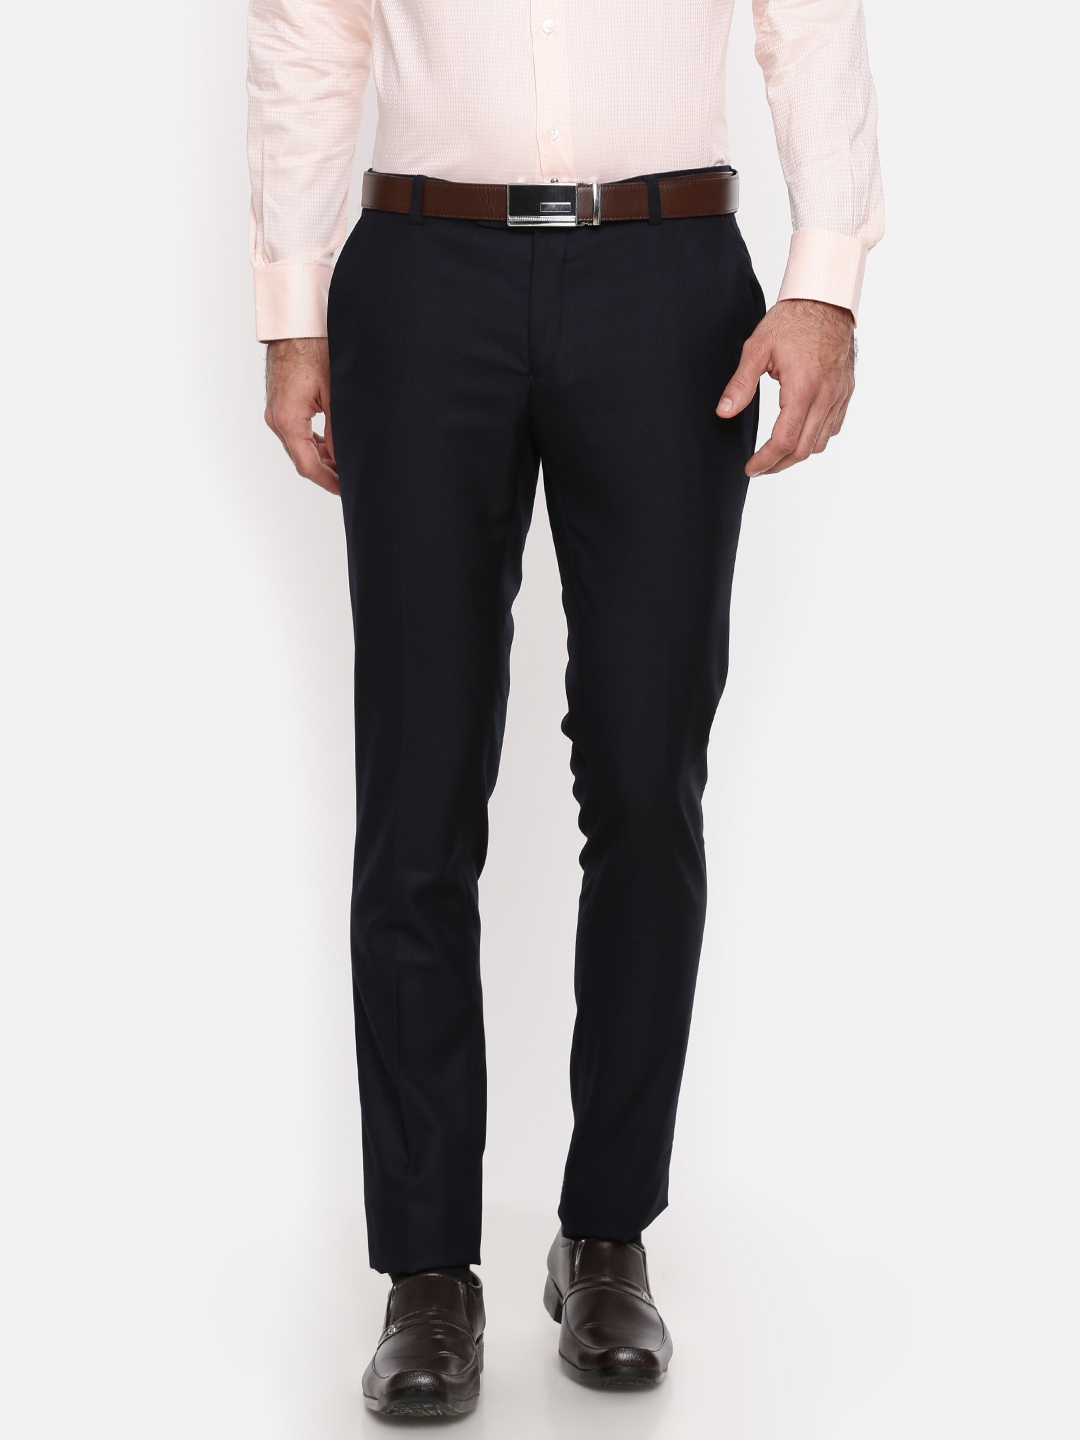 8c0fd465135 Buy Oxemberg Men Navy Blue Slim Fit Solid Formal Trousers - Trousers ...